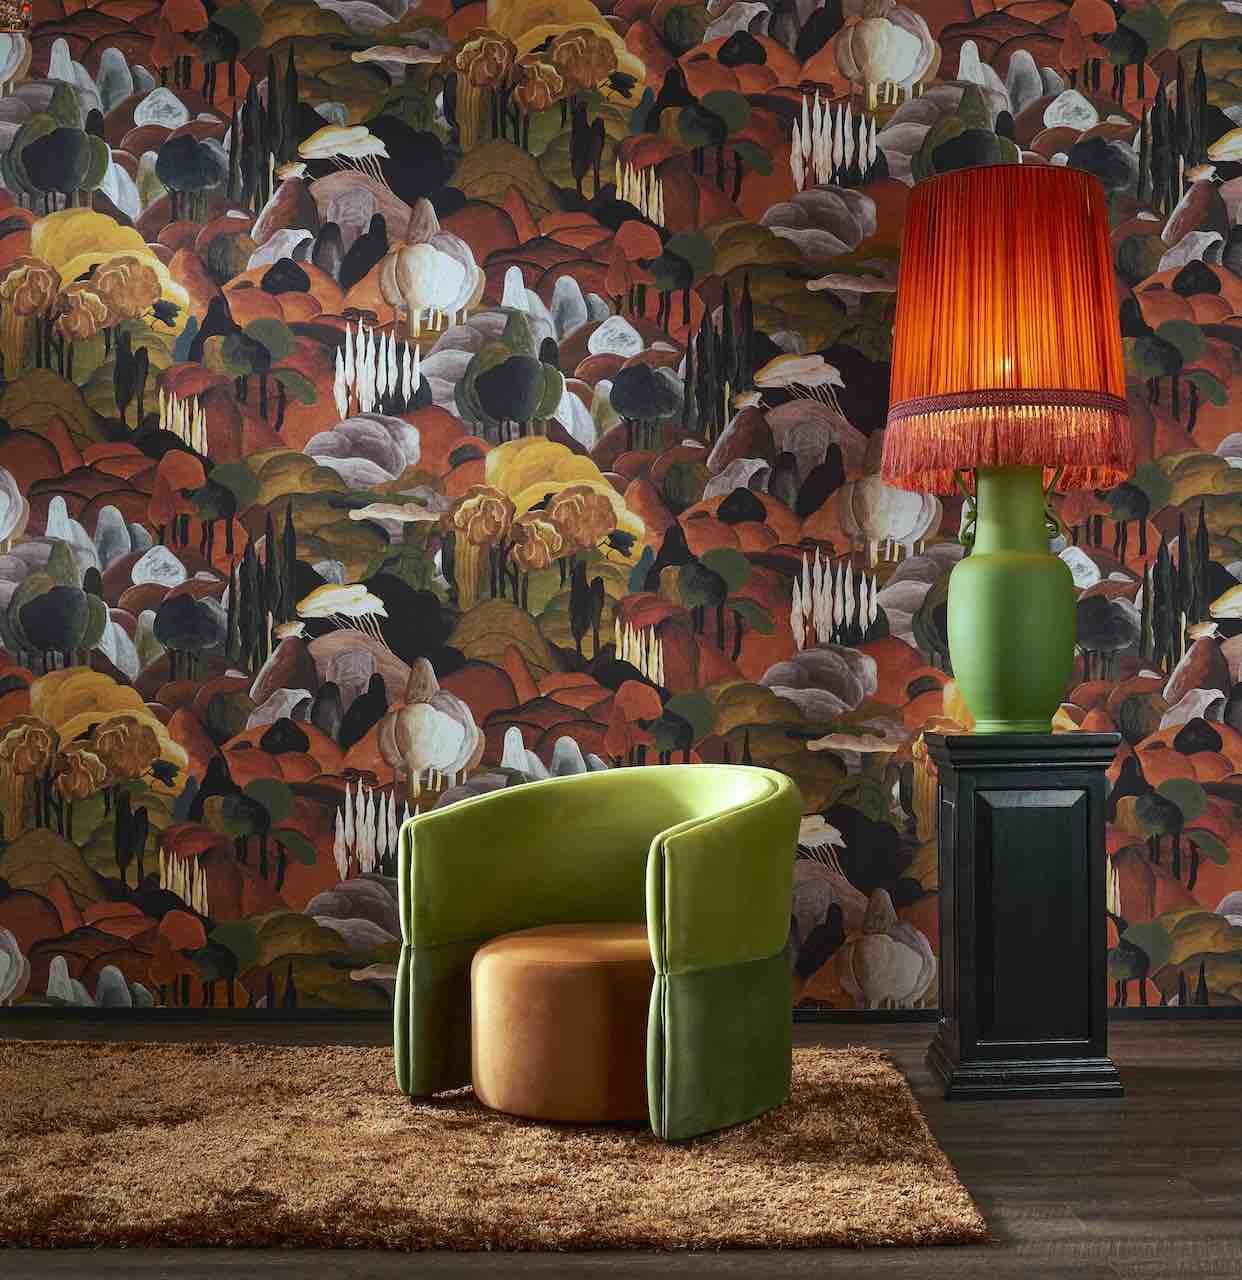 DecorsPanoramiques_All'ombradeicip ressi_97500_Roomshot_Print_HR